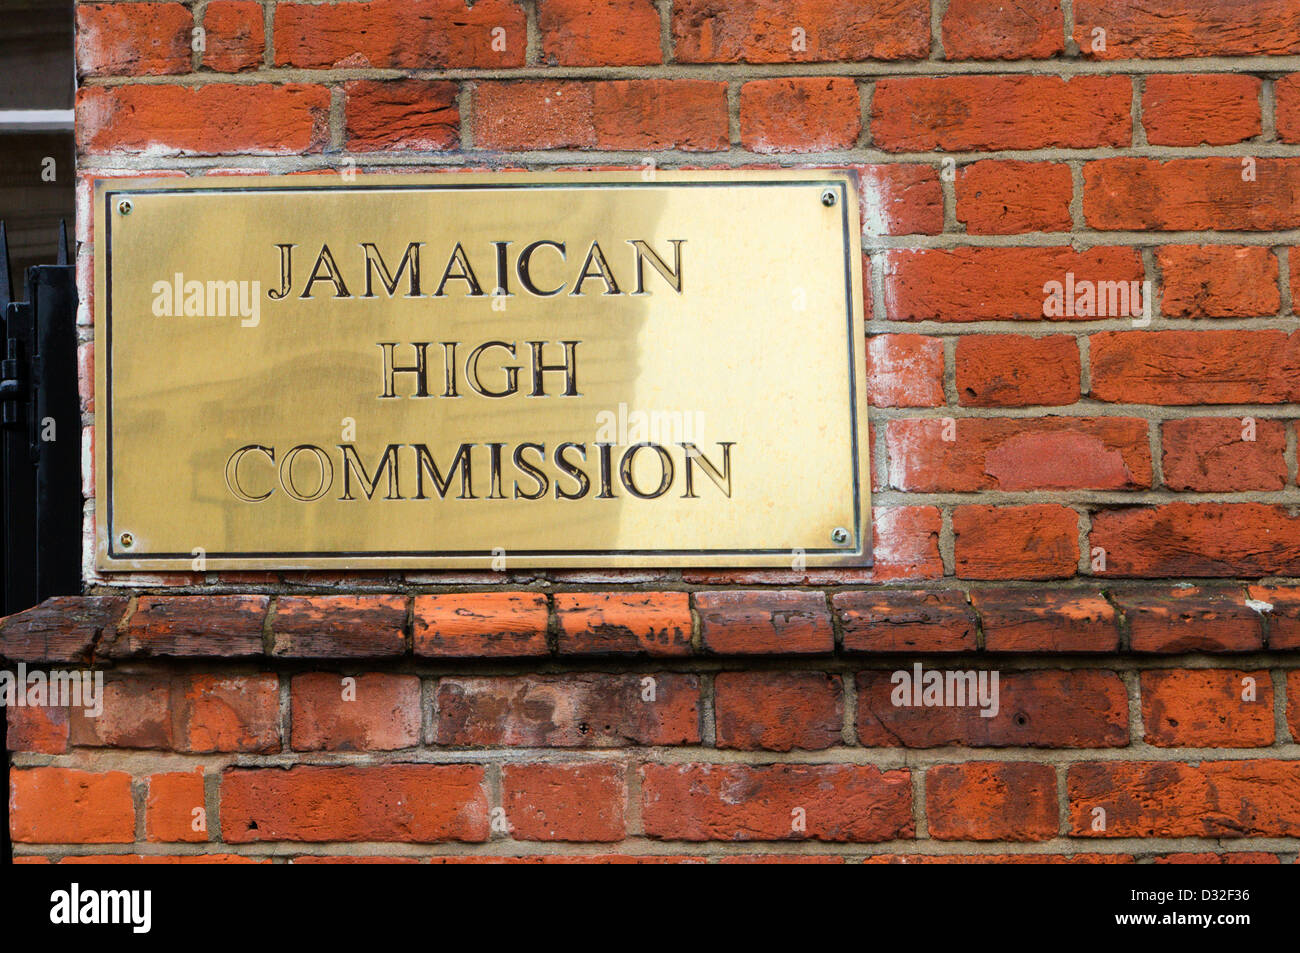 A brass plate on the Jamaican High Commission in Prince Consort Road, South Kensington, London - Stock Image